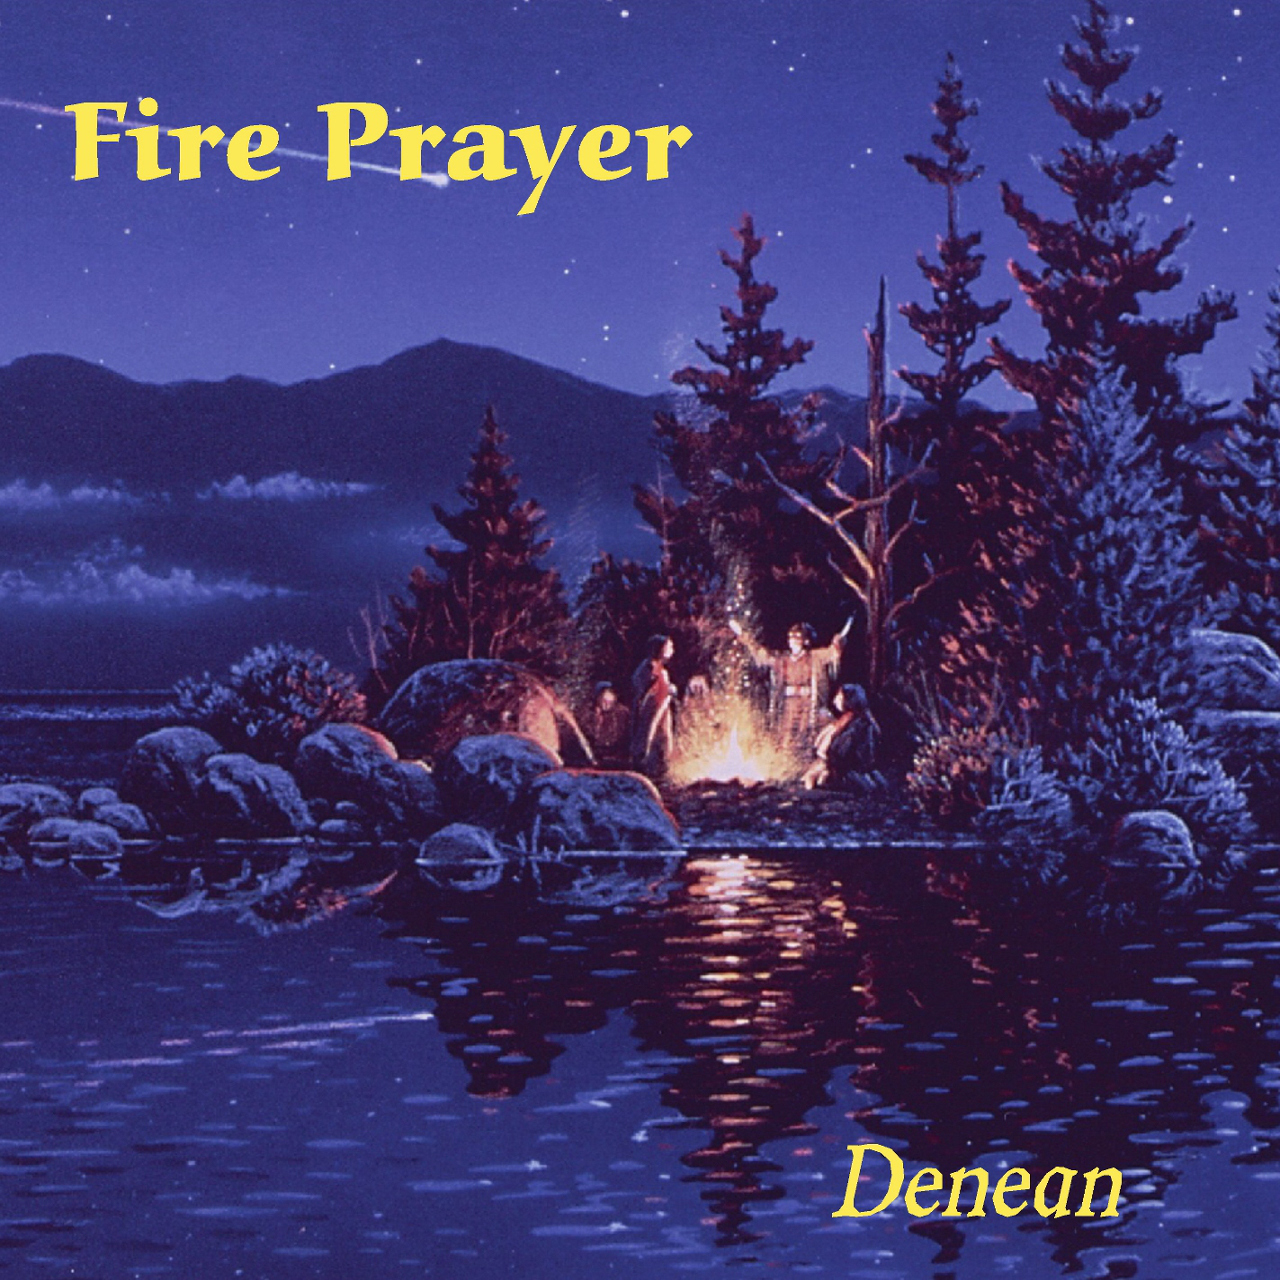 Fire Prayer - Denean